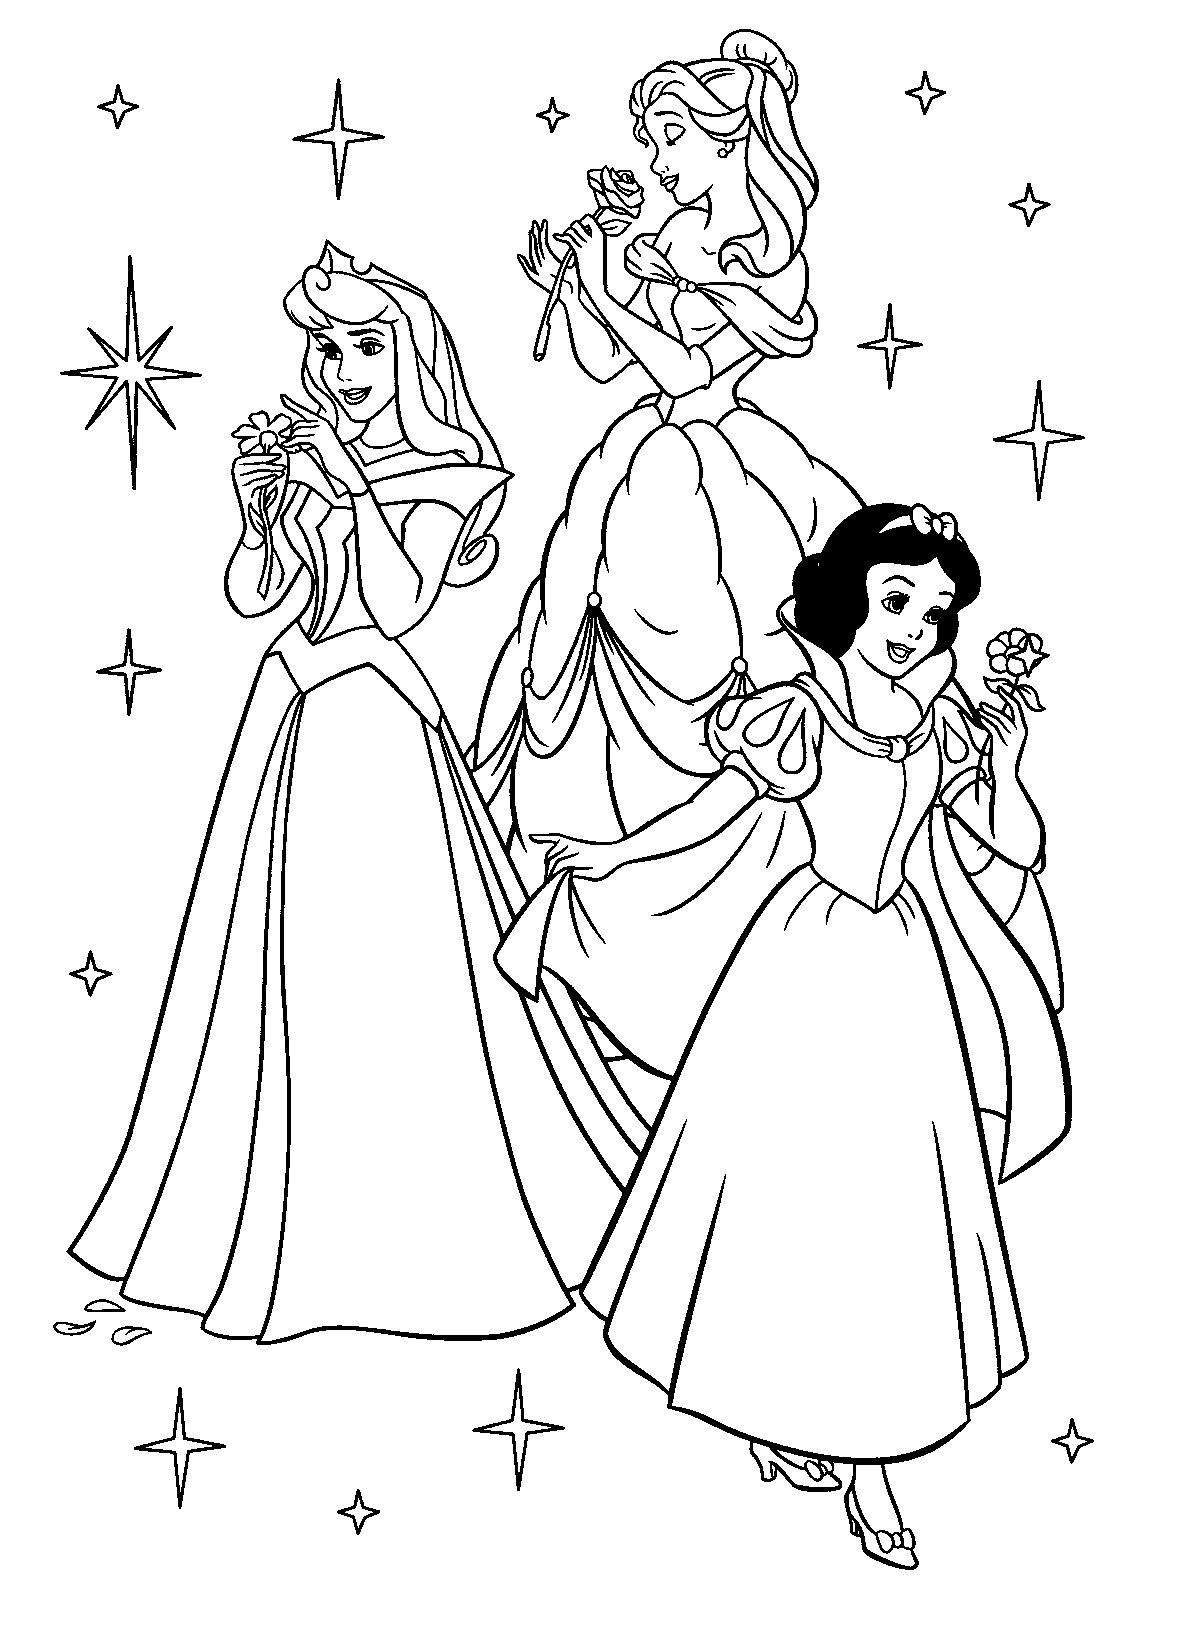 coloring pictures of princesses free printable disney princess coloring pages for kids of coloring princesses pictures